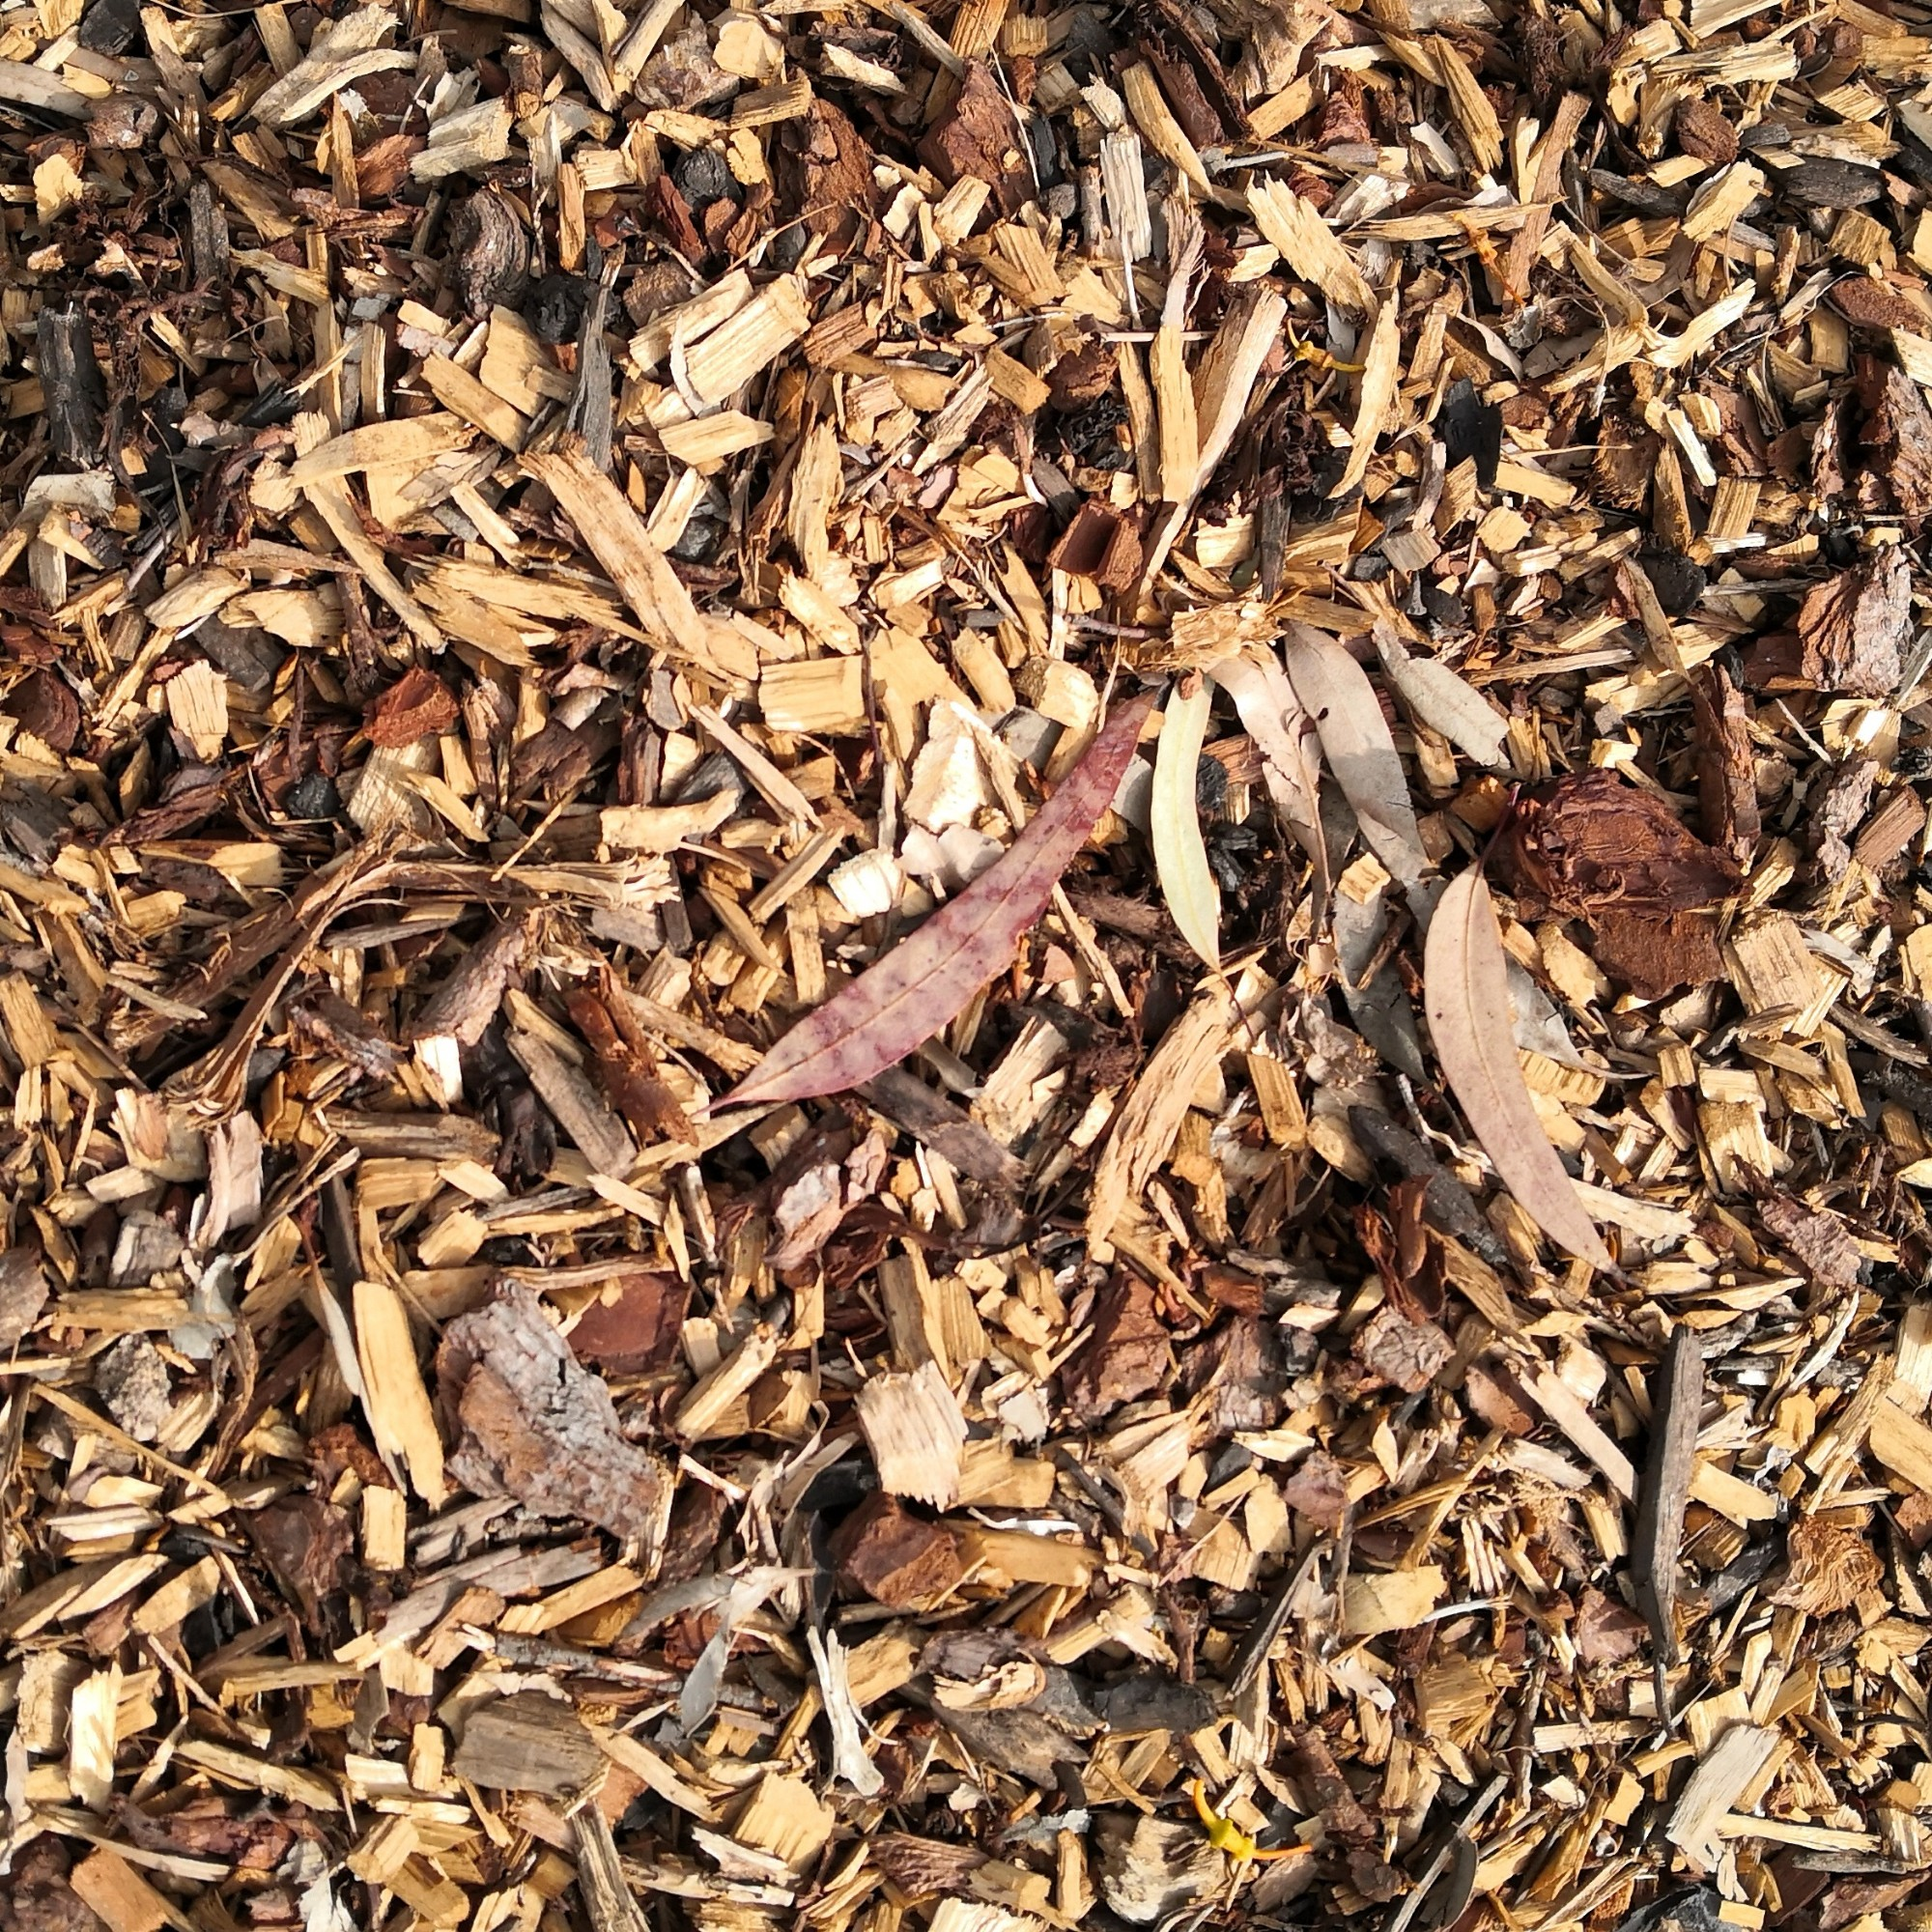 Fine wood chips